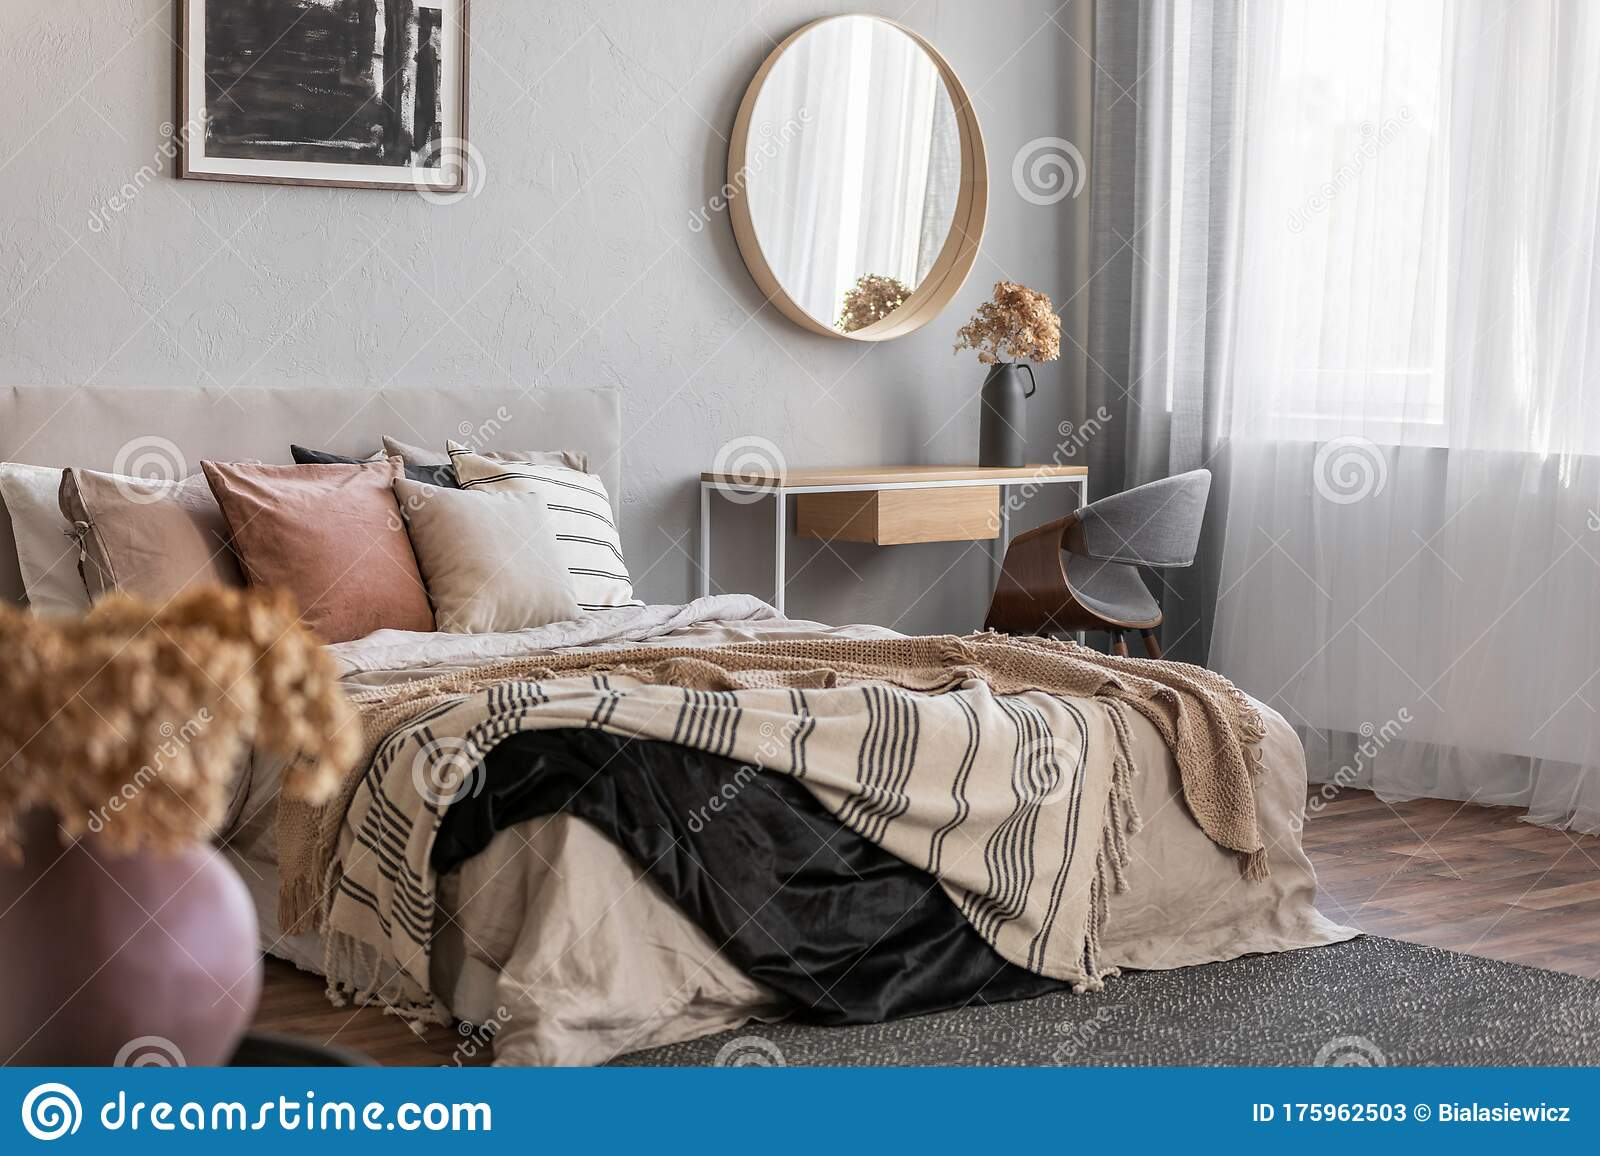 1 423 Fancy Bedroom Photos Free Royalty Free Stock Photos From Dreamstime